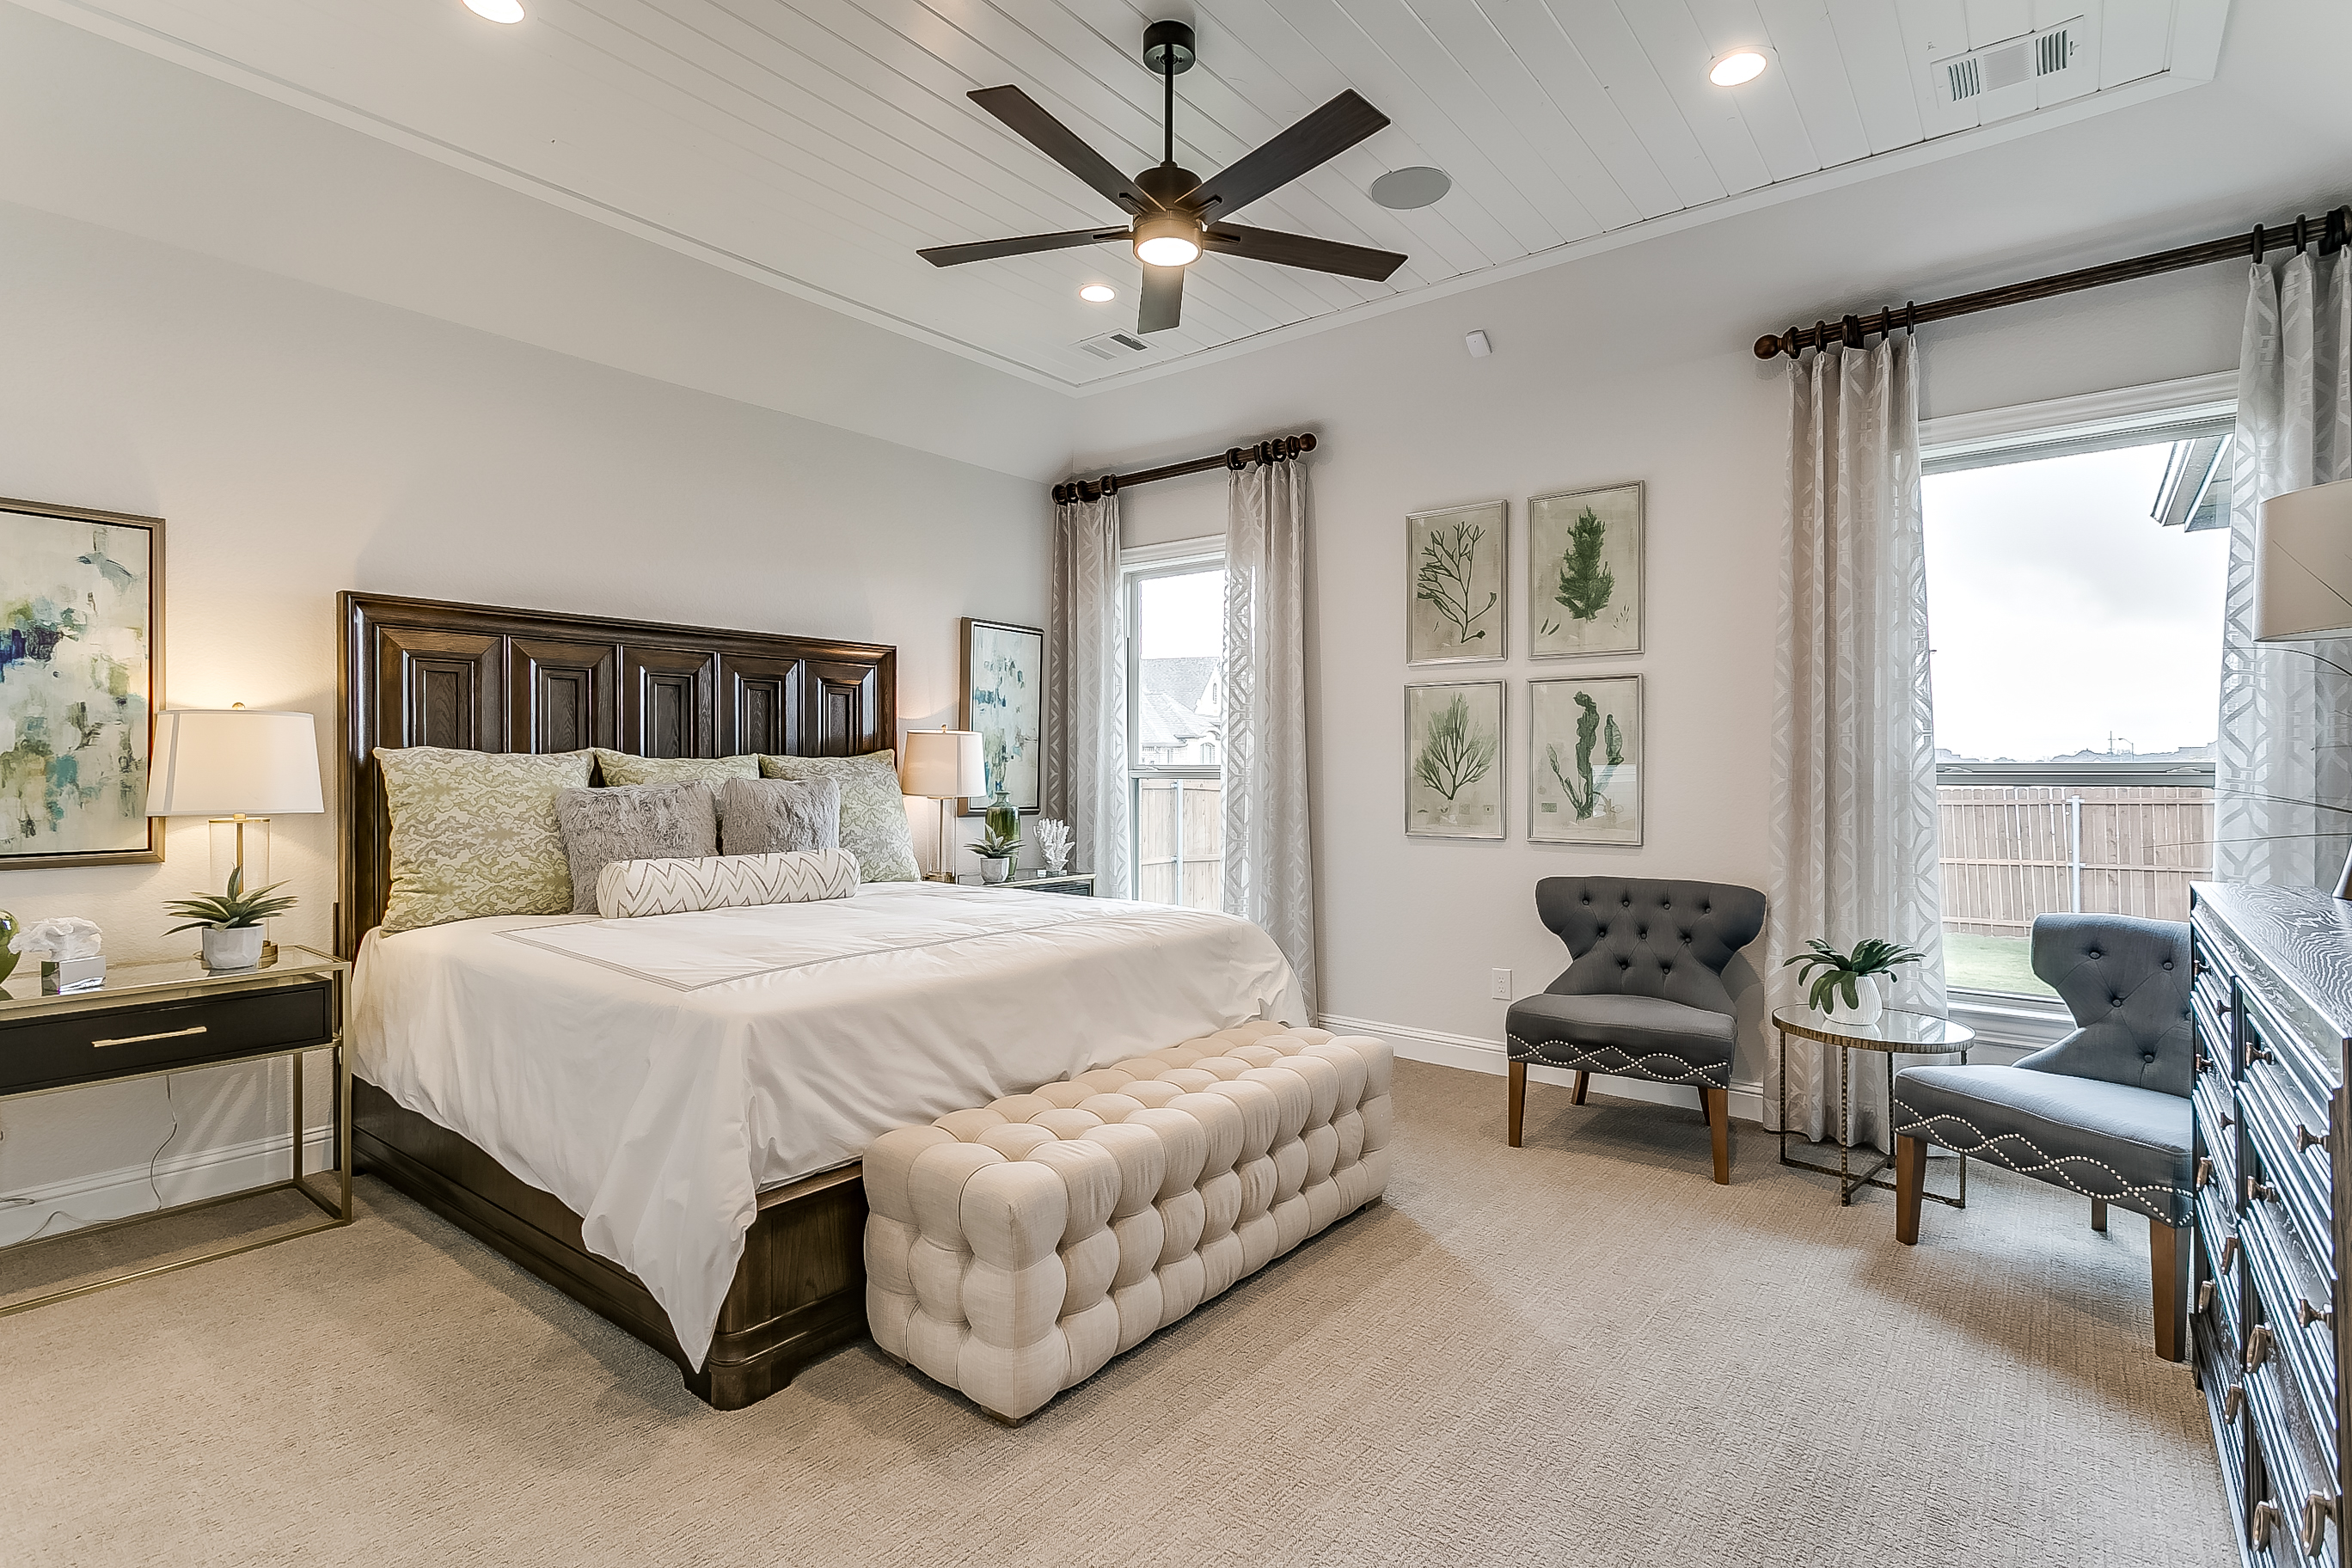 Estates at North Grove, Waxahachie, new homes for sale, waxahachie home builder, ellis county, model home, 3d gallery, 3d home tour, model home photos, master bedroom